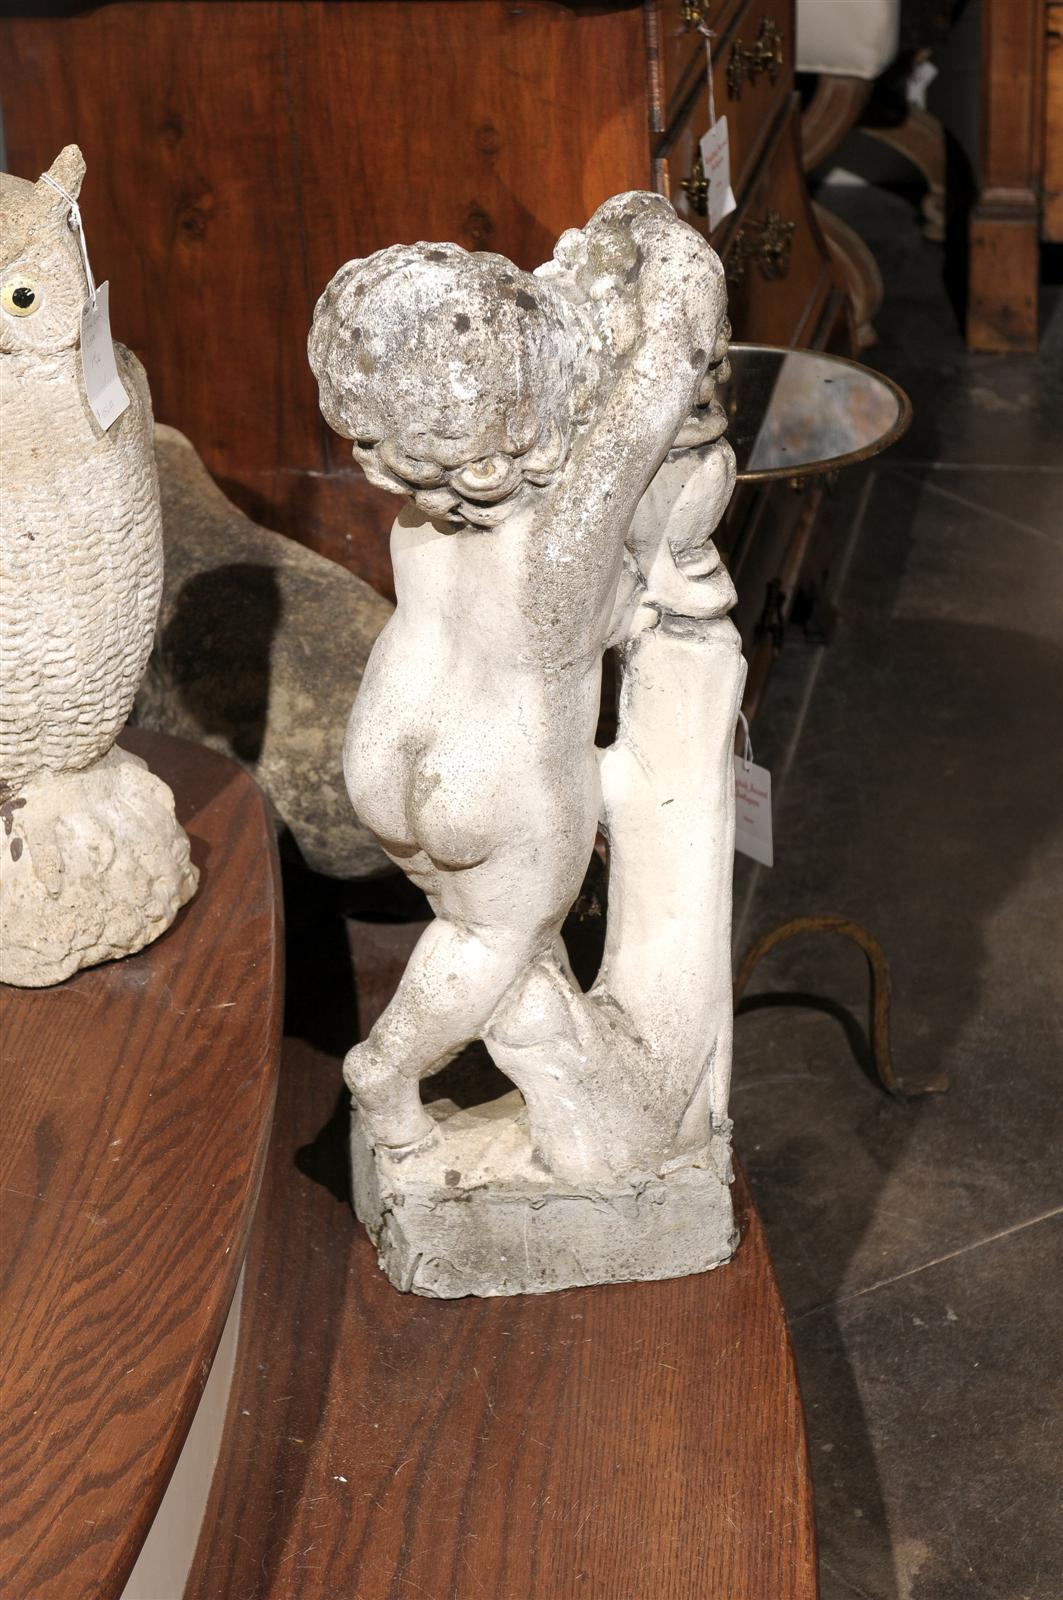 French Carved Stone Putti Sculpture with Grapes from the Mid 20th Century For Sale 1